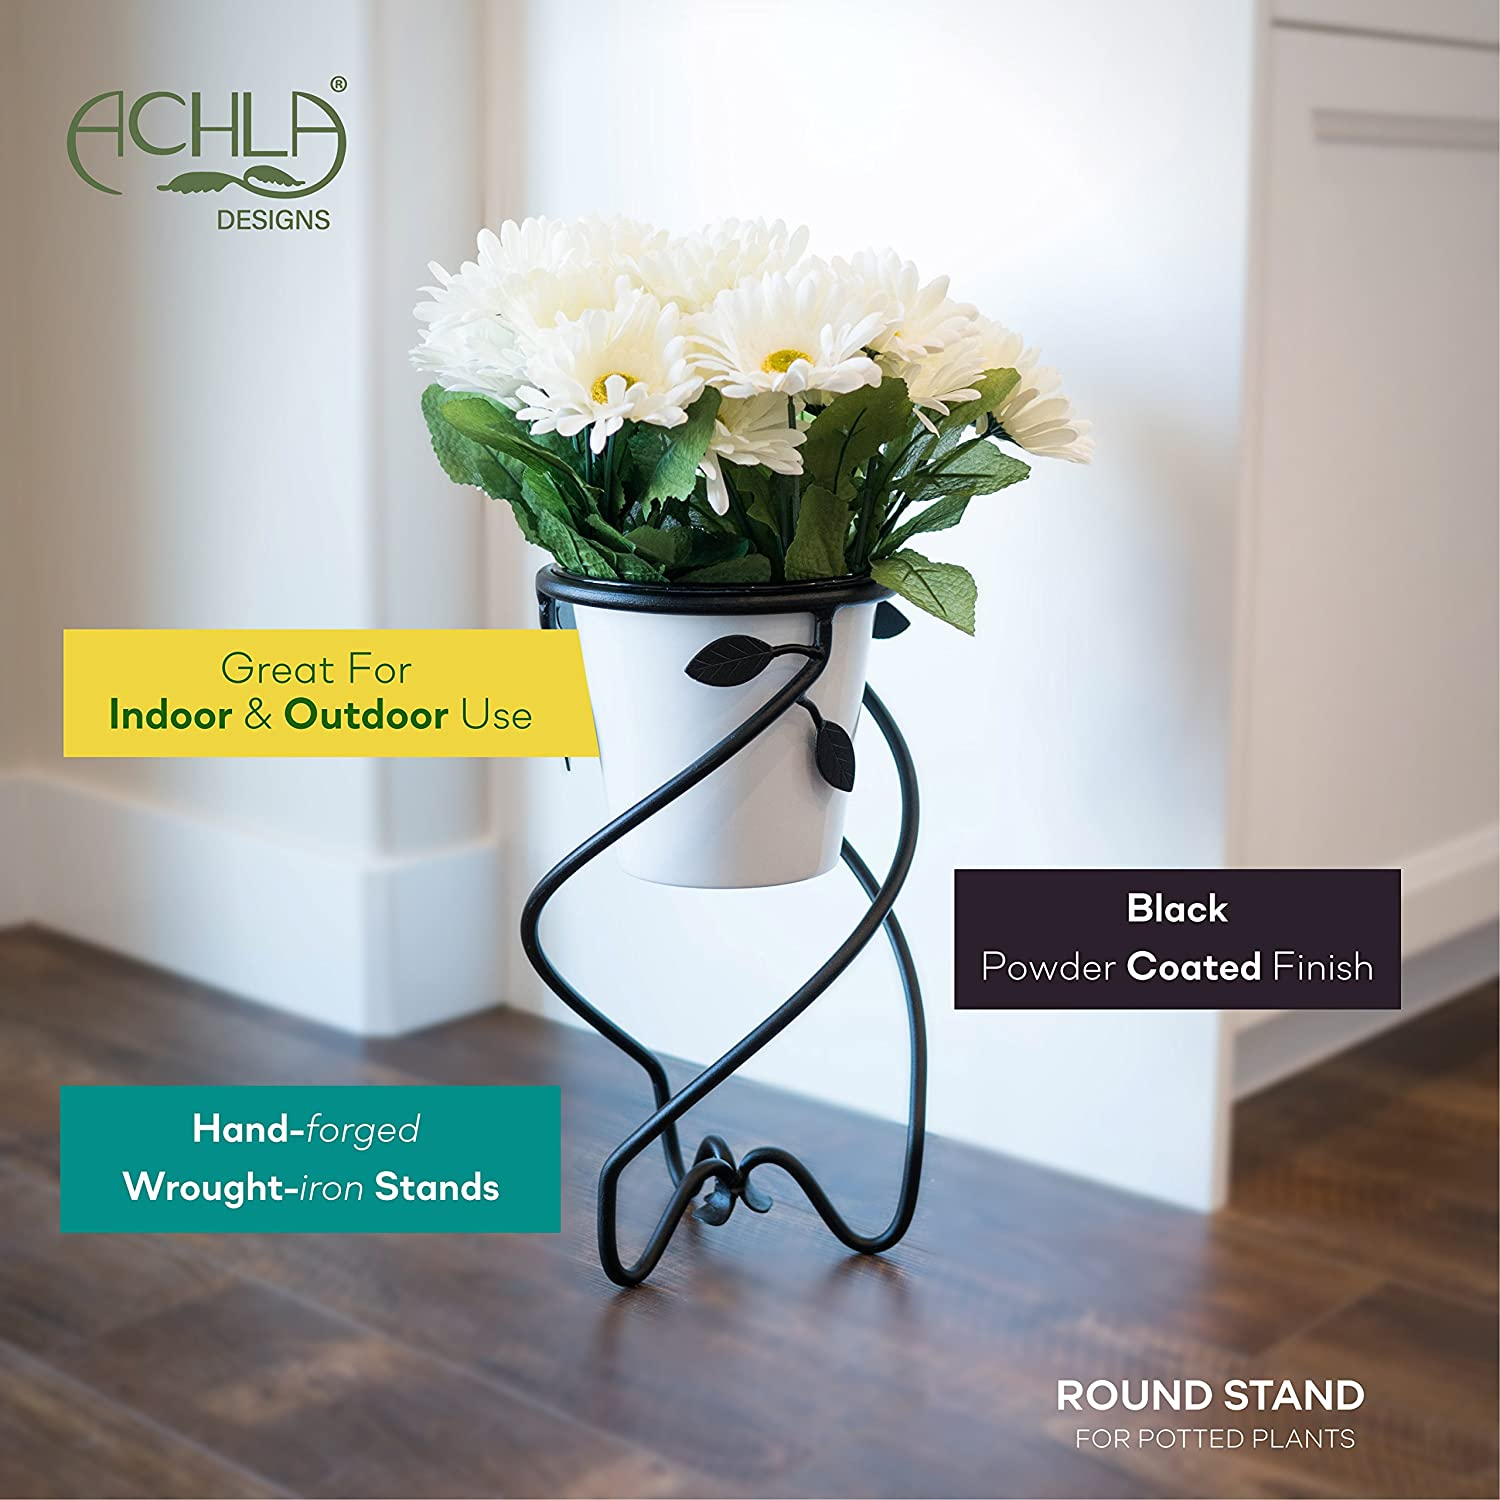 Flower Stand Designs : Amazon achla designs helix flower pot plant stand in h